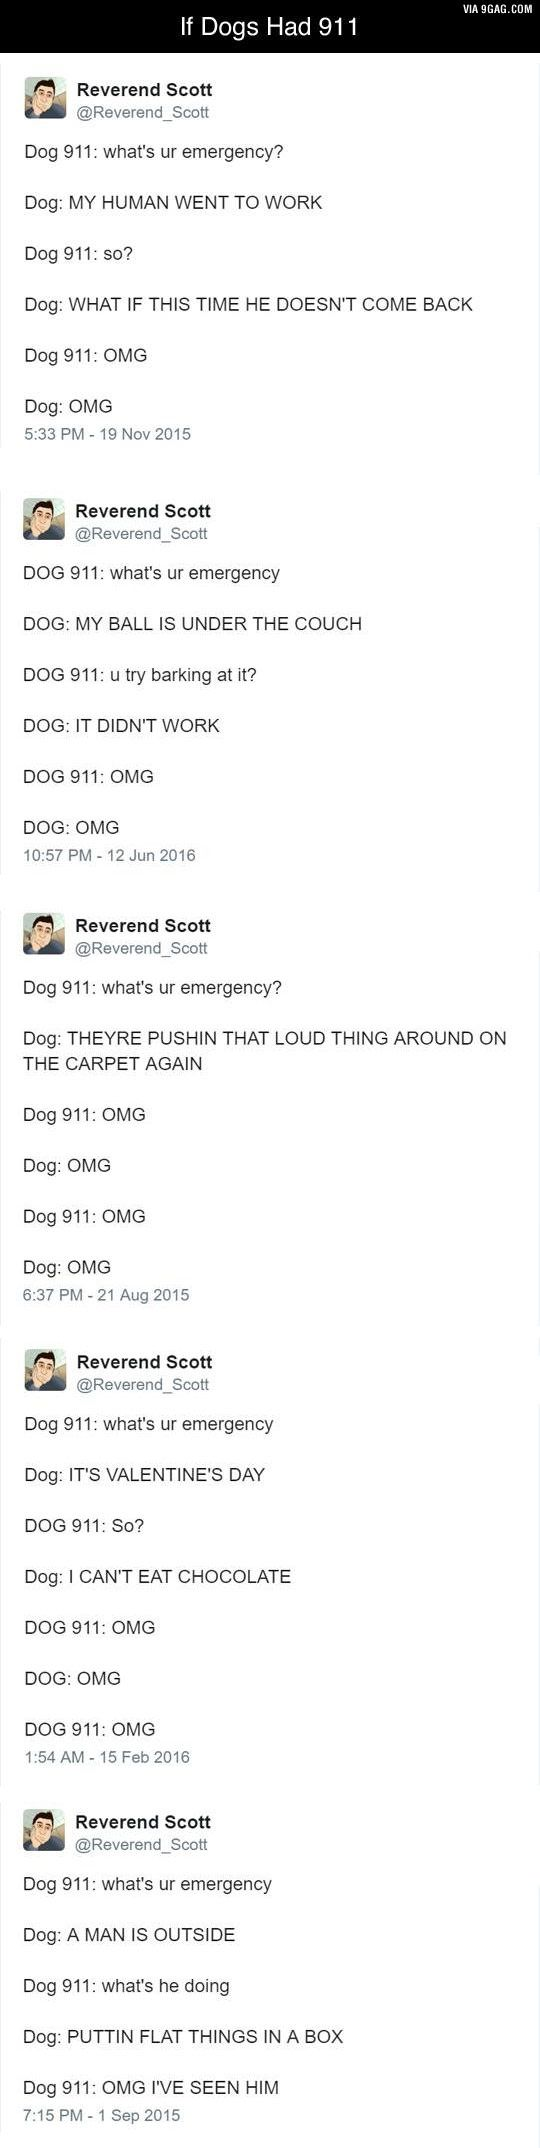 If dogs had 911 - 9GAG